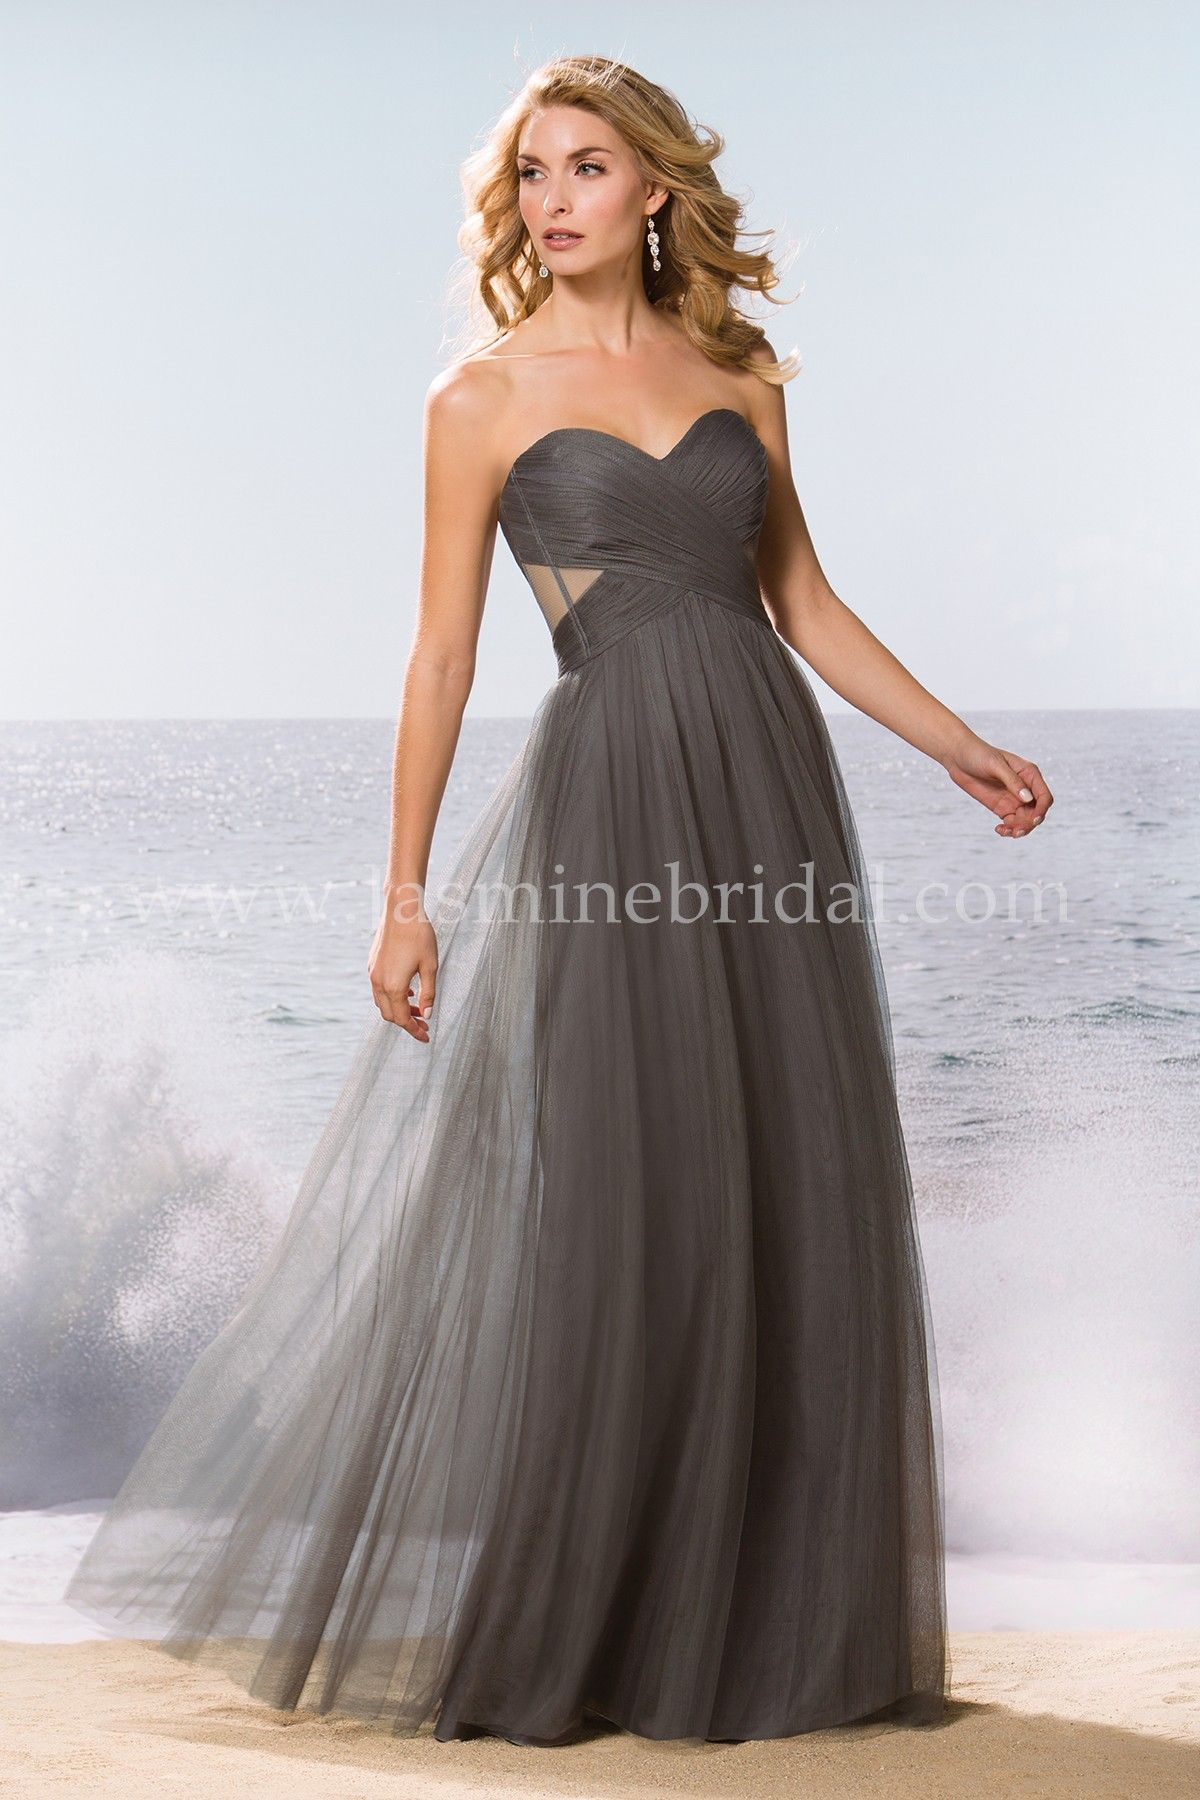 Jasmine bridal bridesmaid dress belsoie style l174062 in iron jasmine bridal bridesmaid dress belsoie style l174062 in iron simple sexy and ombrellifo Images